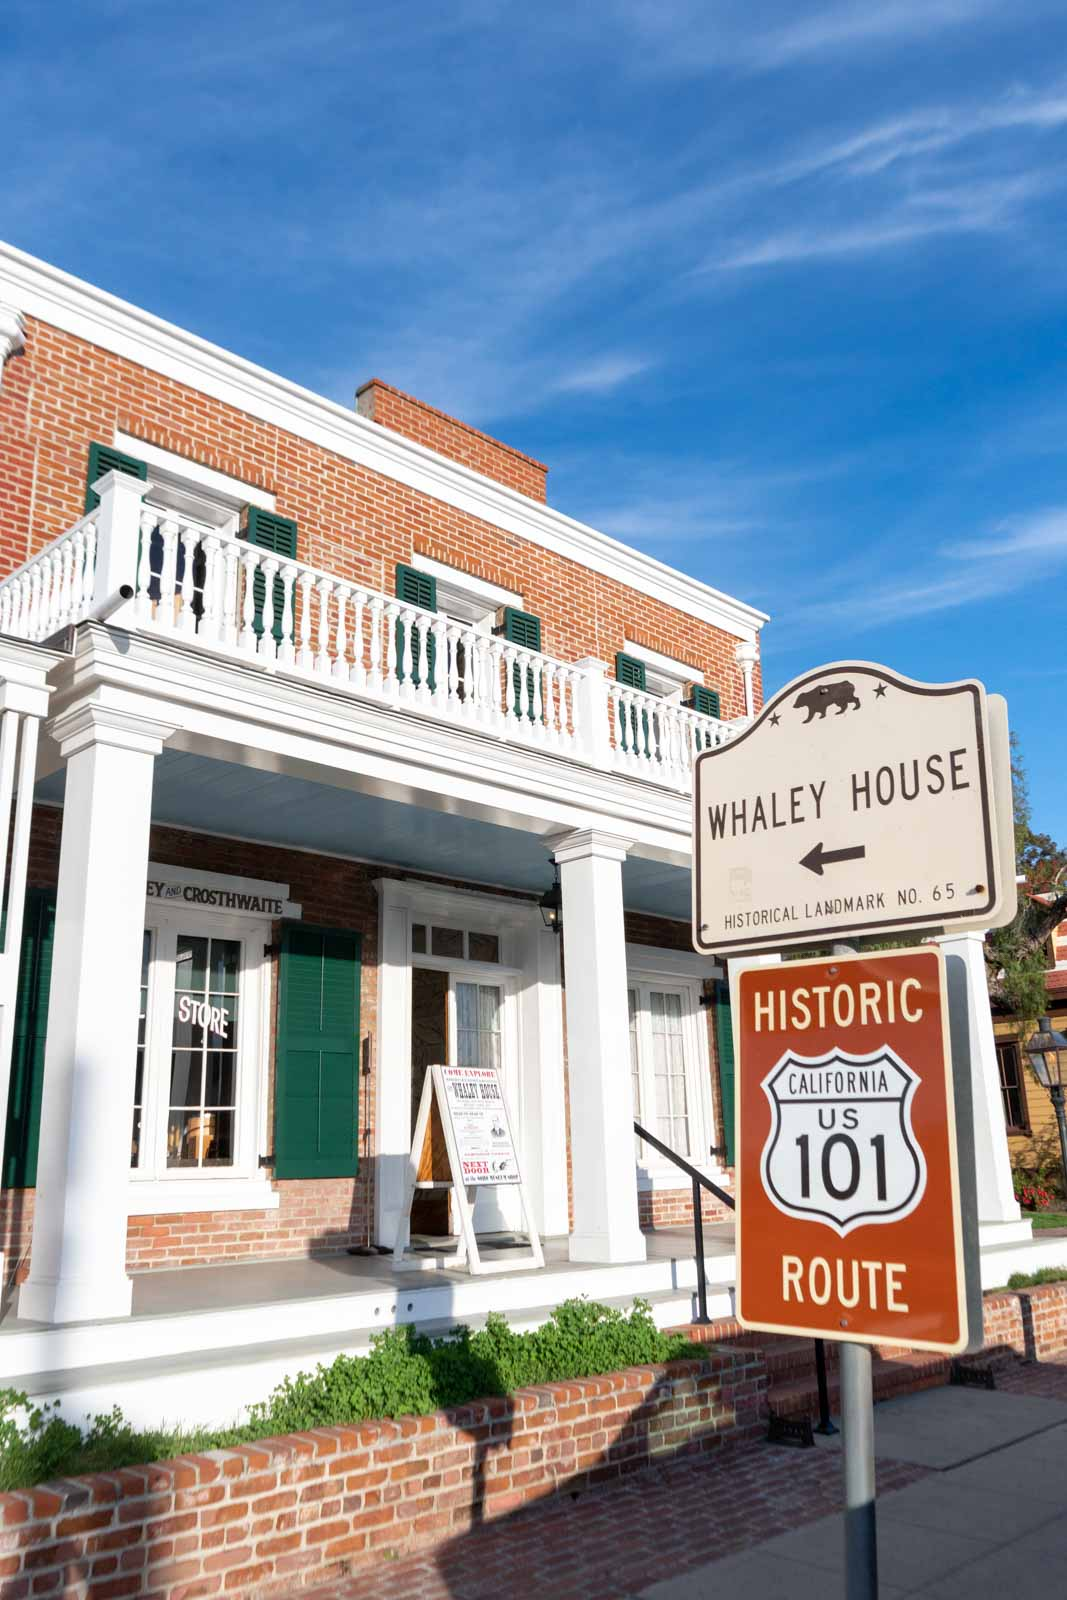 Whaley House Exterior in Old Town San Diego